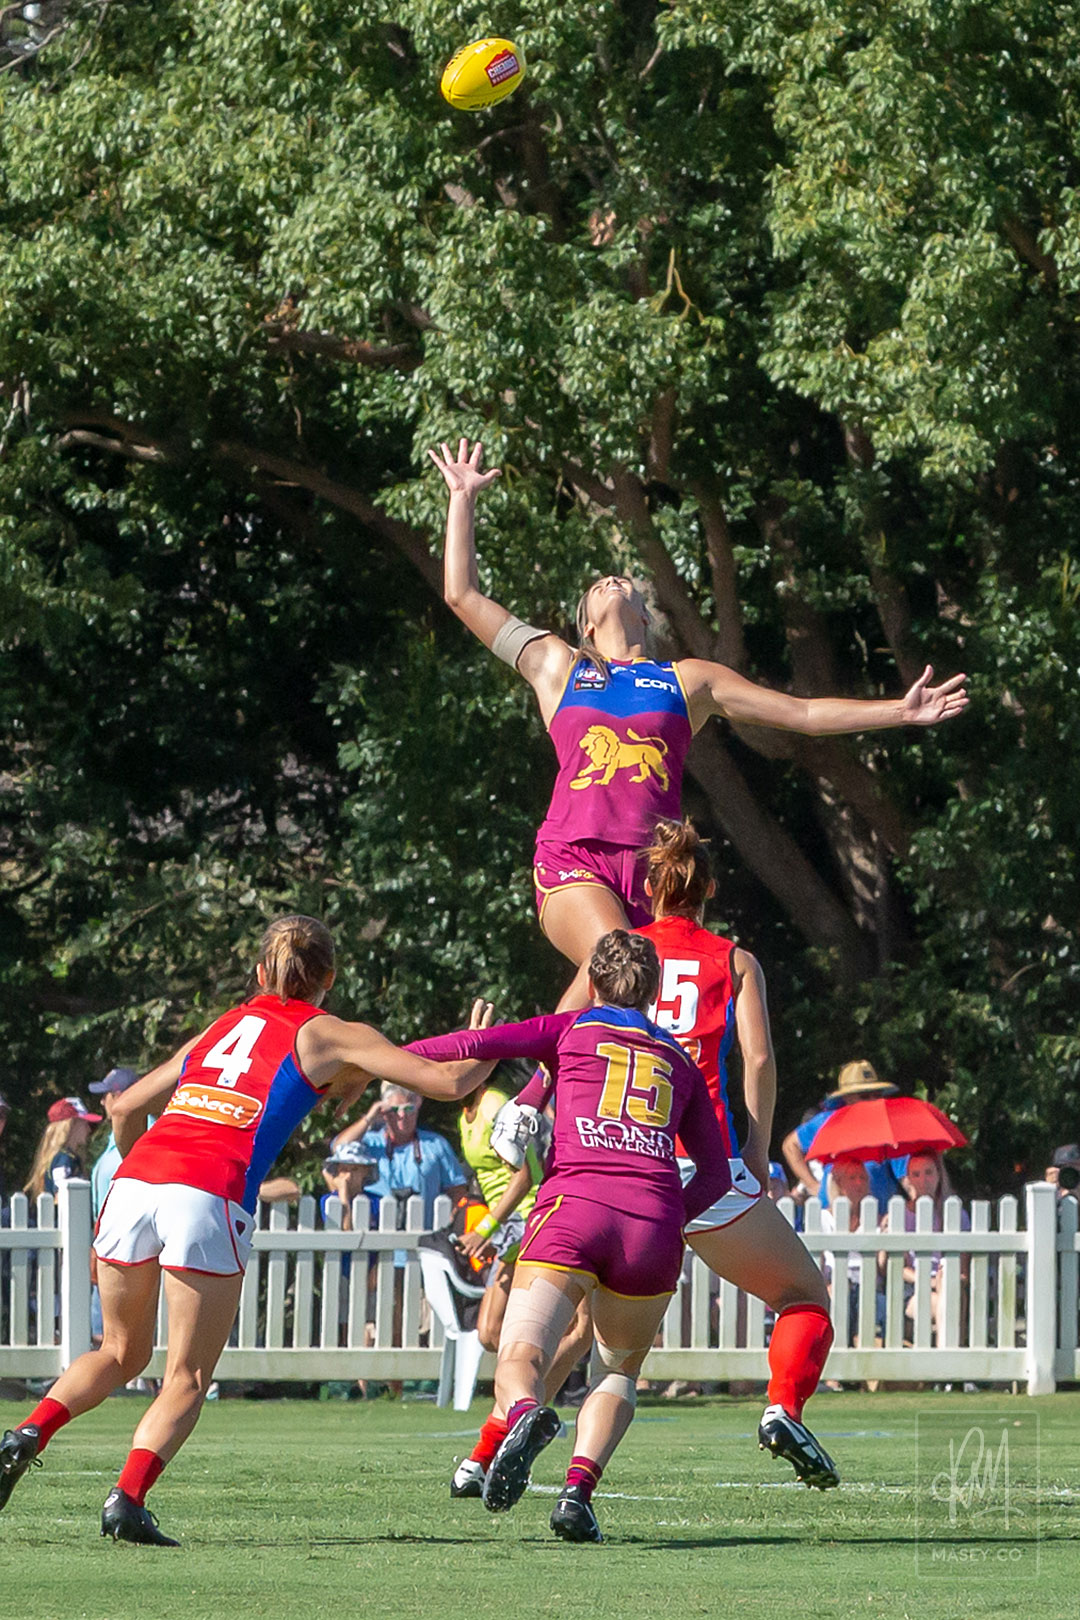 Rookie Lauren Bella dominated the opening couple of ruck contests